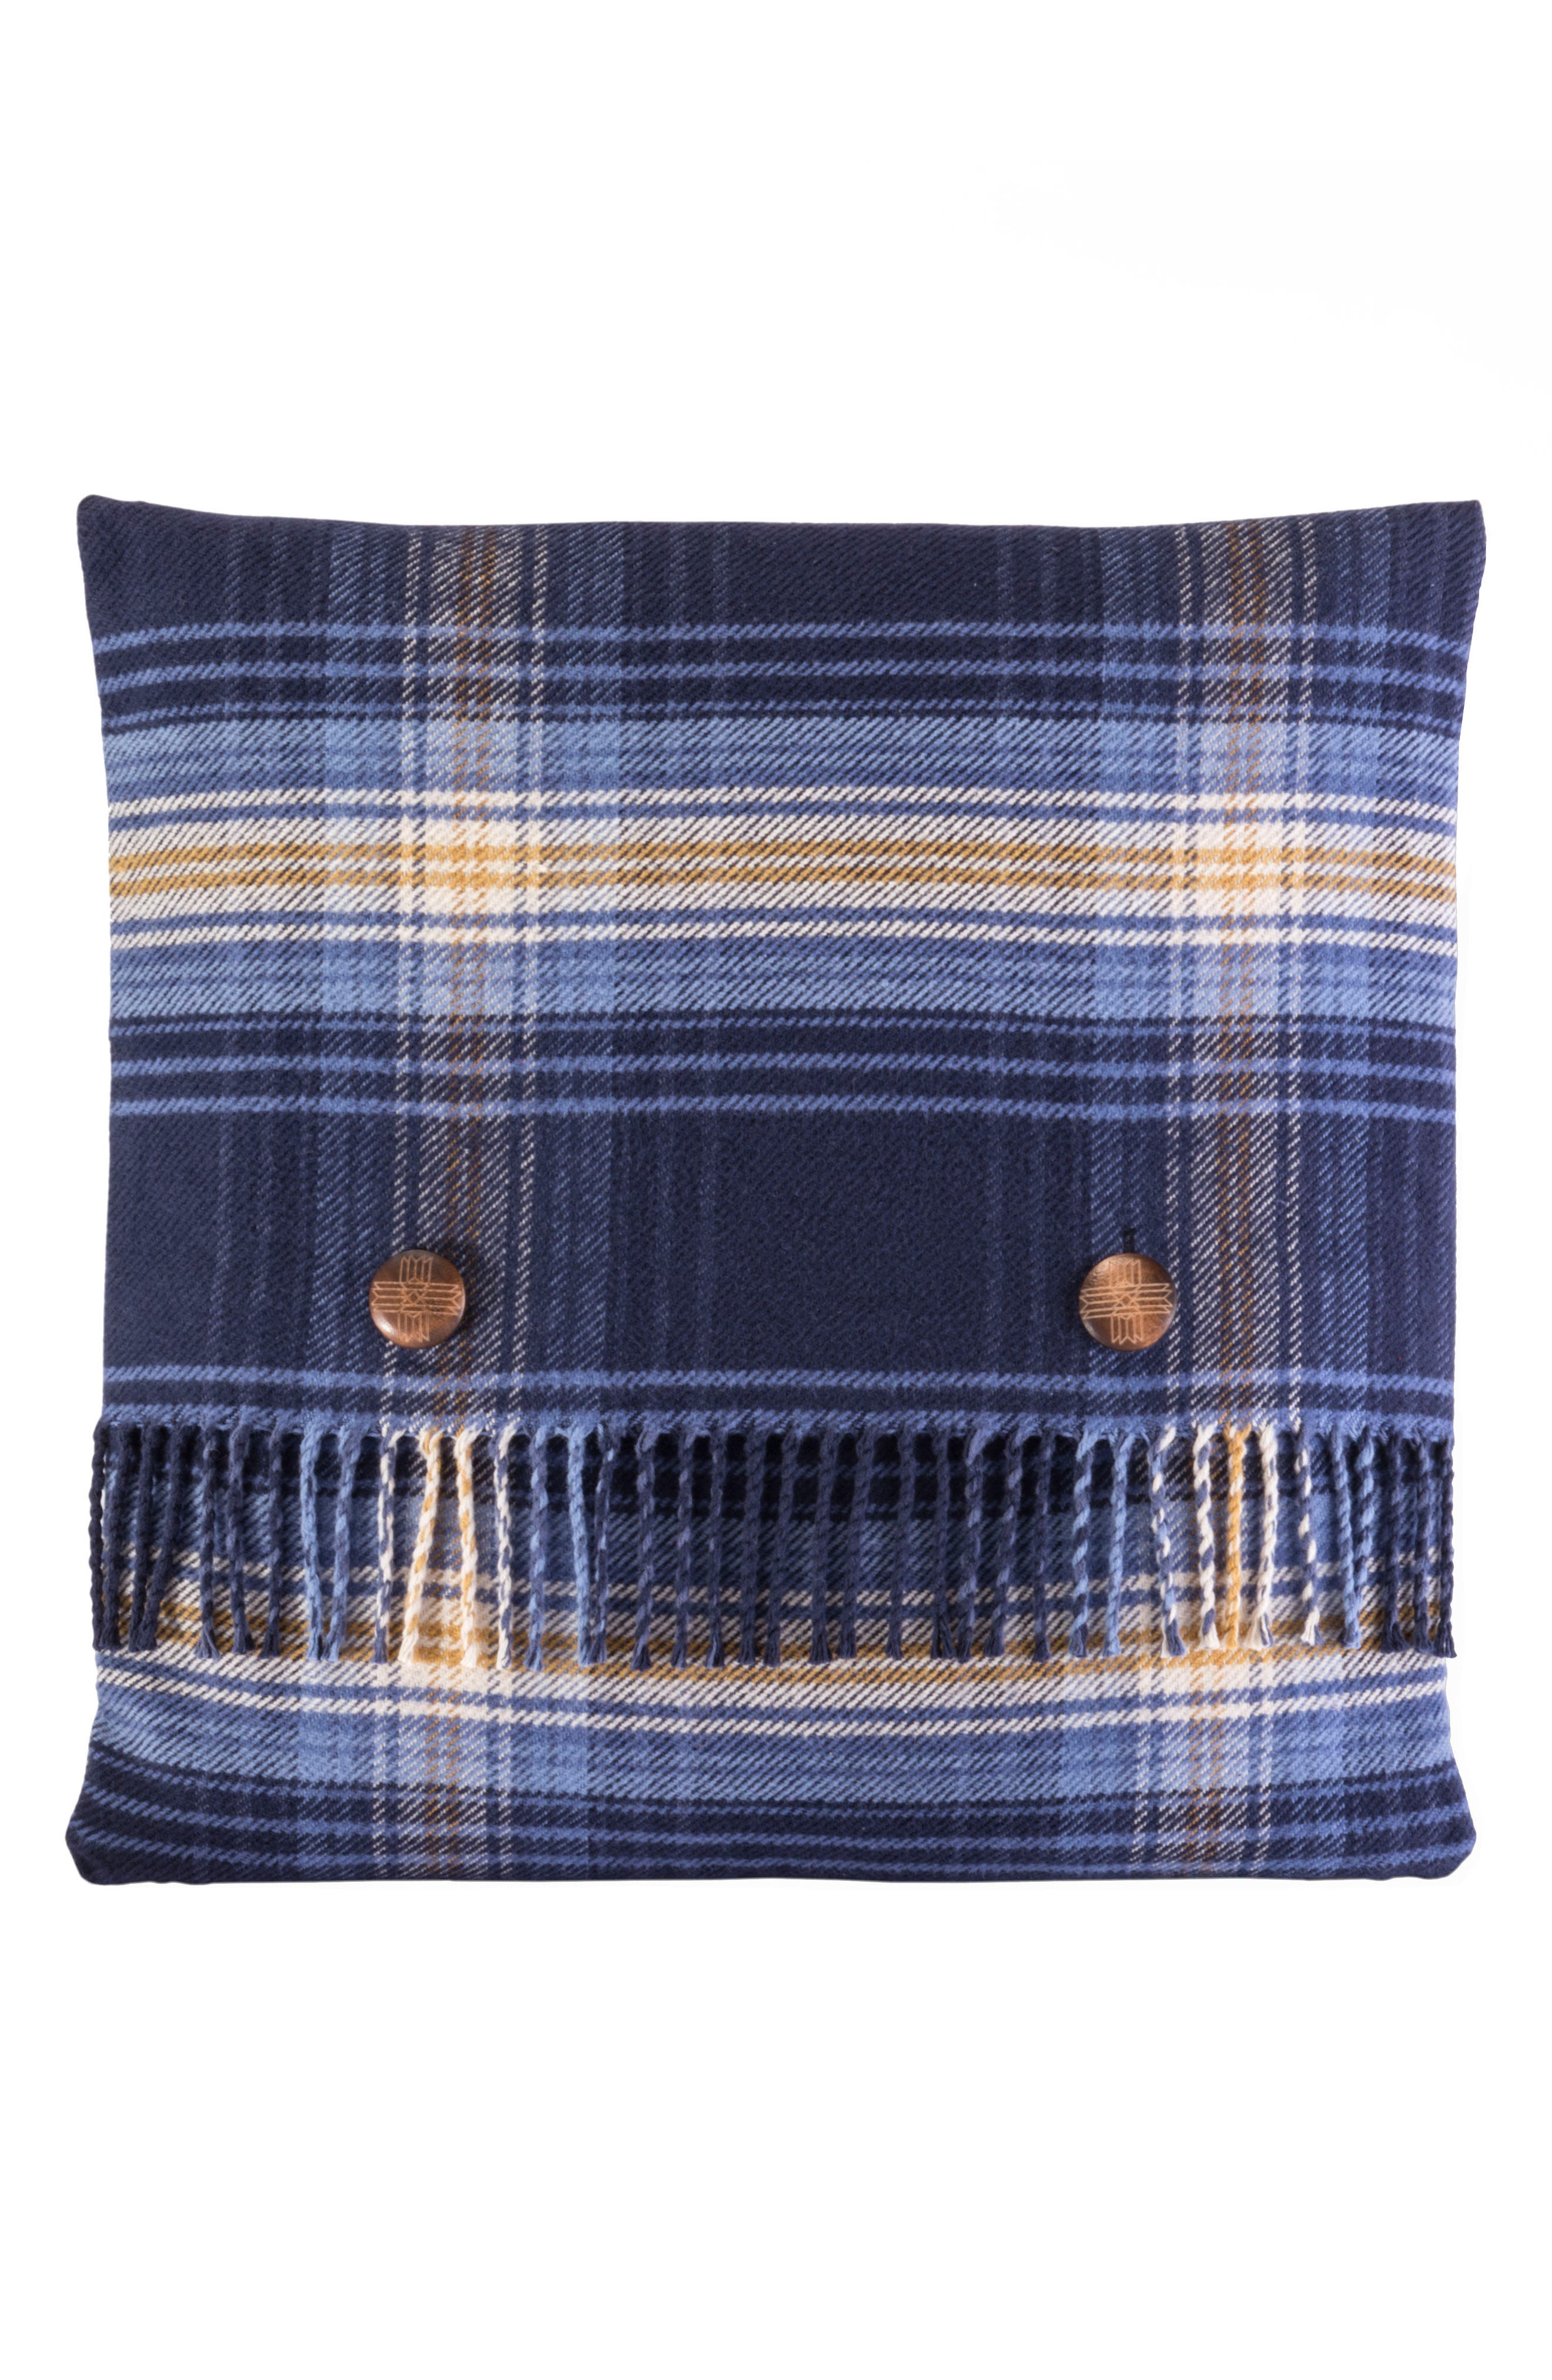 Main Image - Pendleton Ombre Plaid Pillow